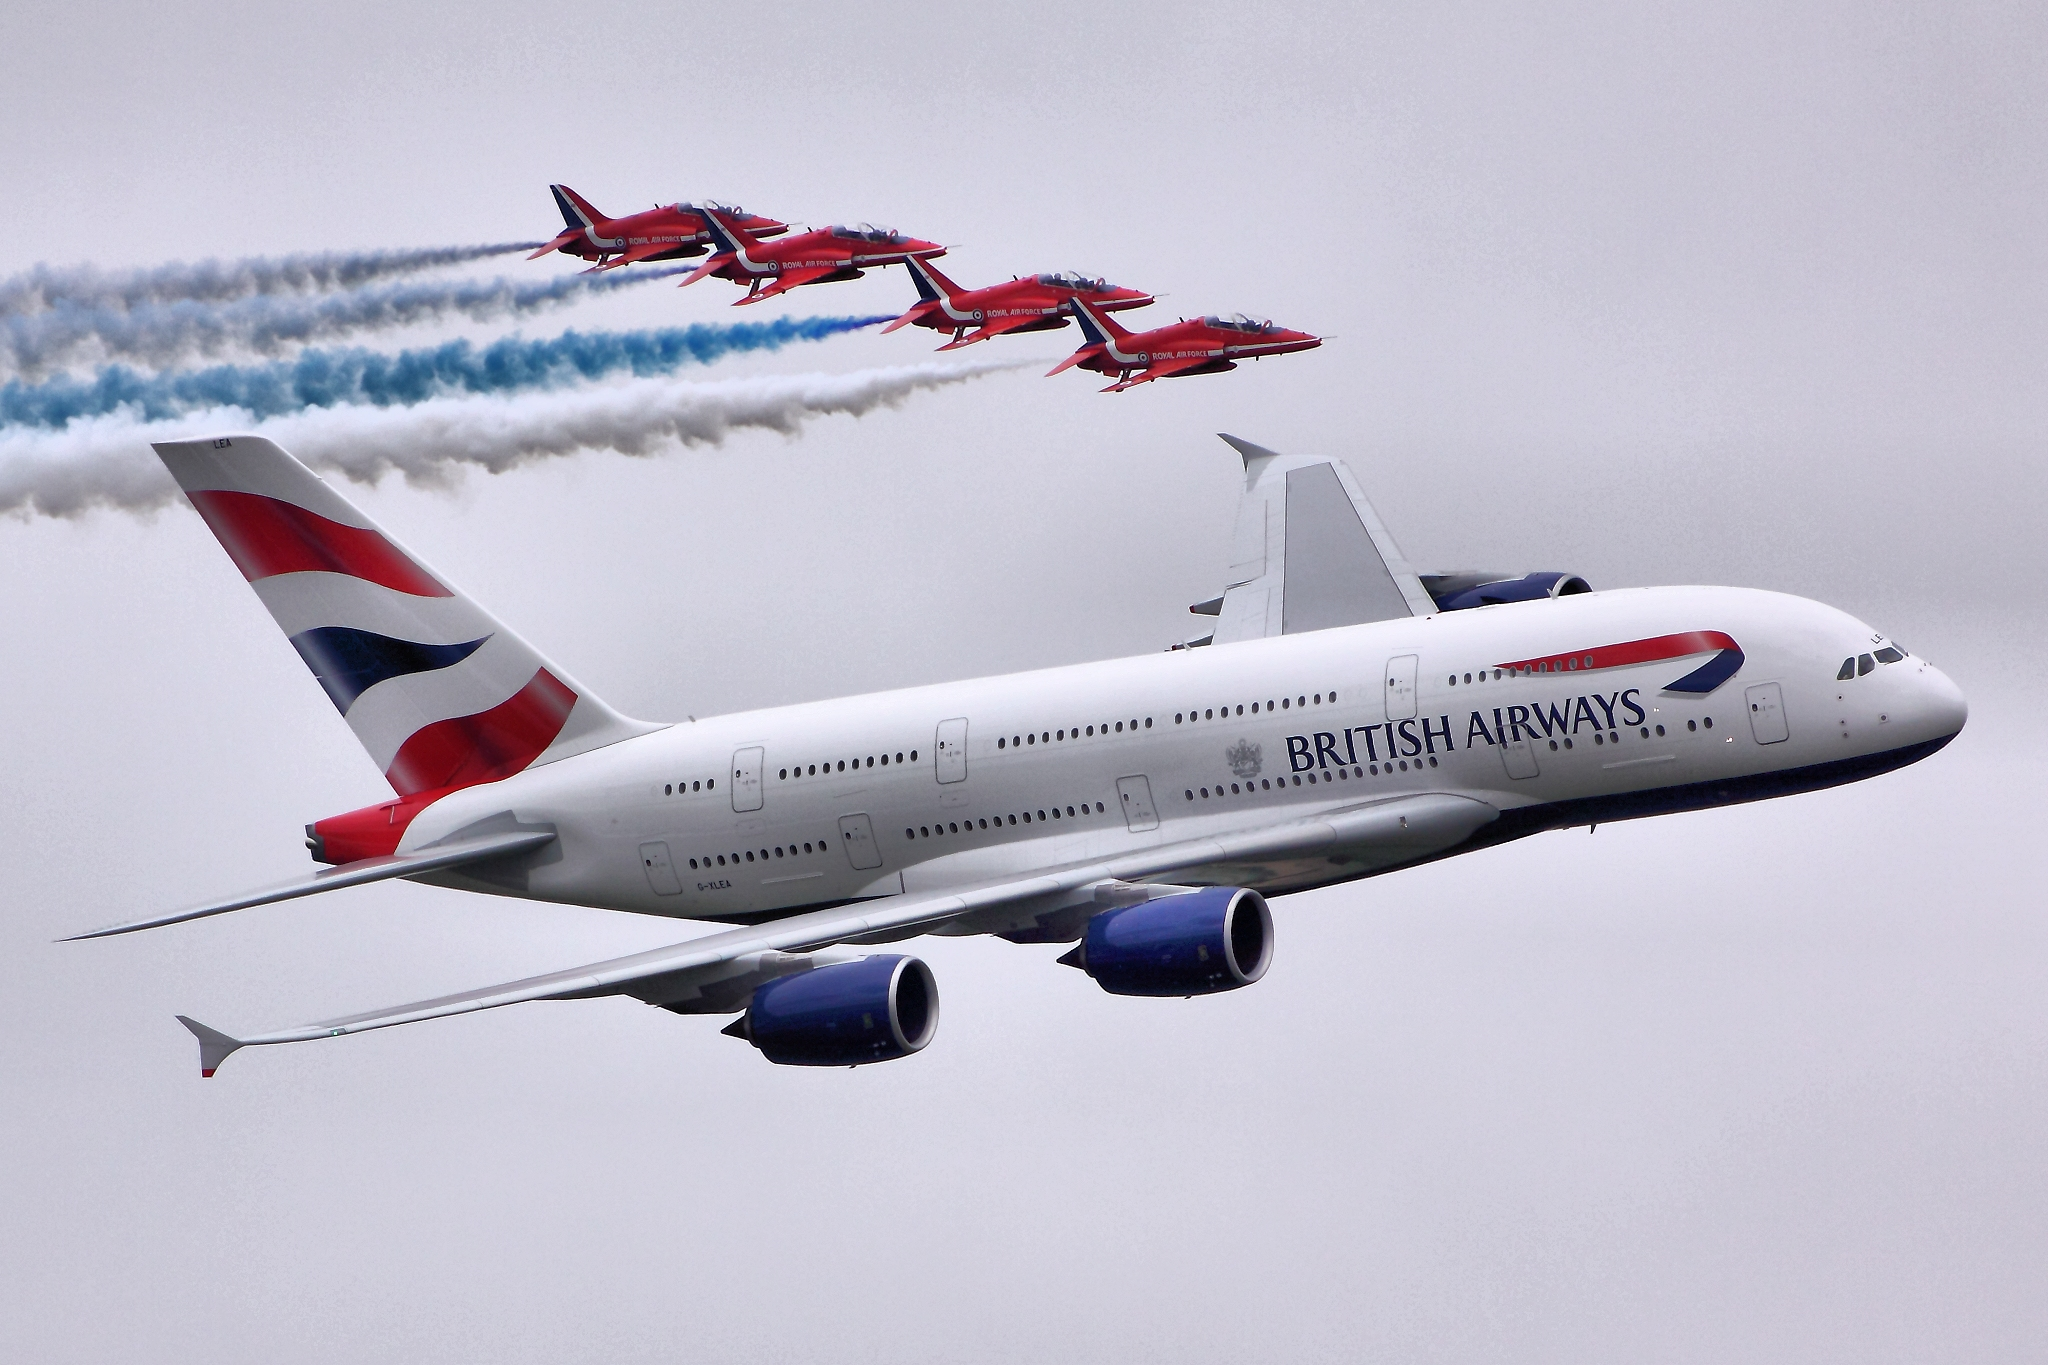 british airways using tqm to improve A competitive analysis of airline industry: a case study on  with emirates, british airways, qatar airways, singapore airlines, air india, jet airways, and gulf .